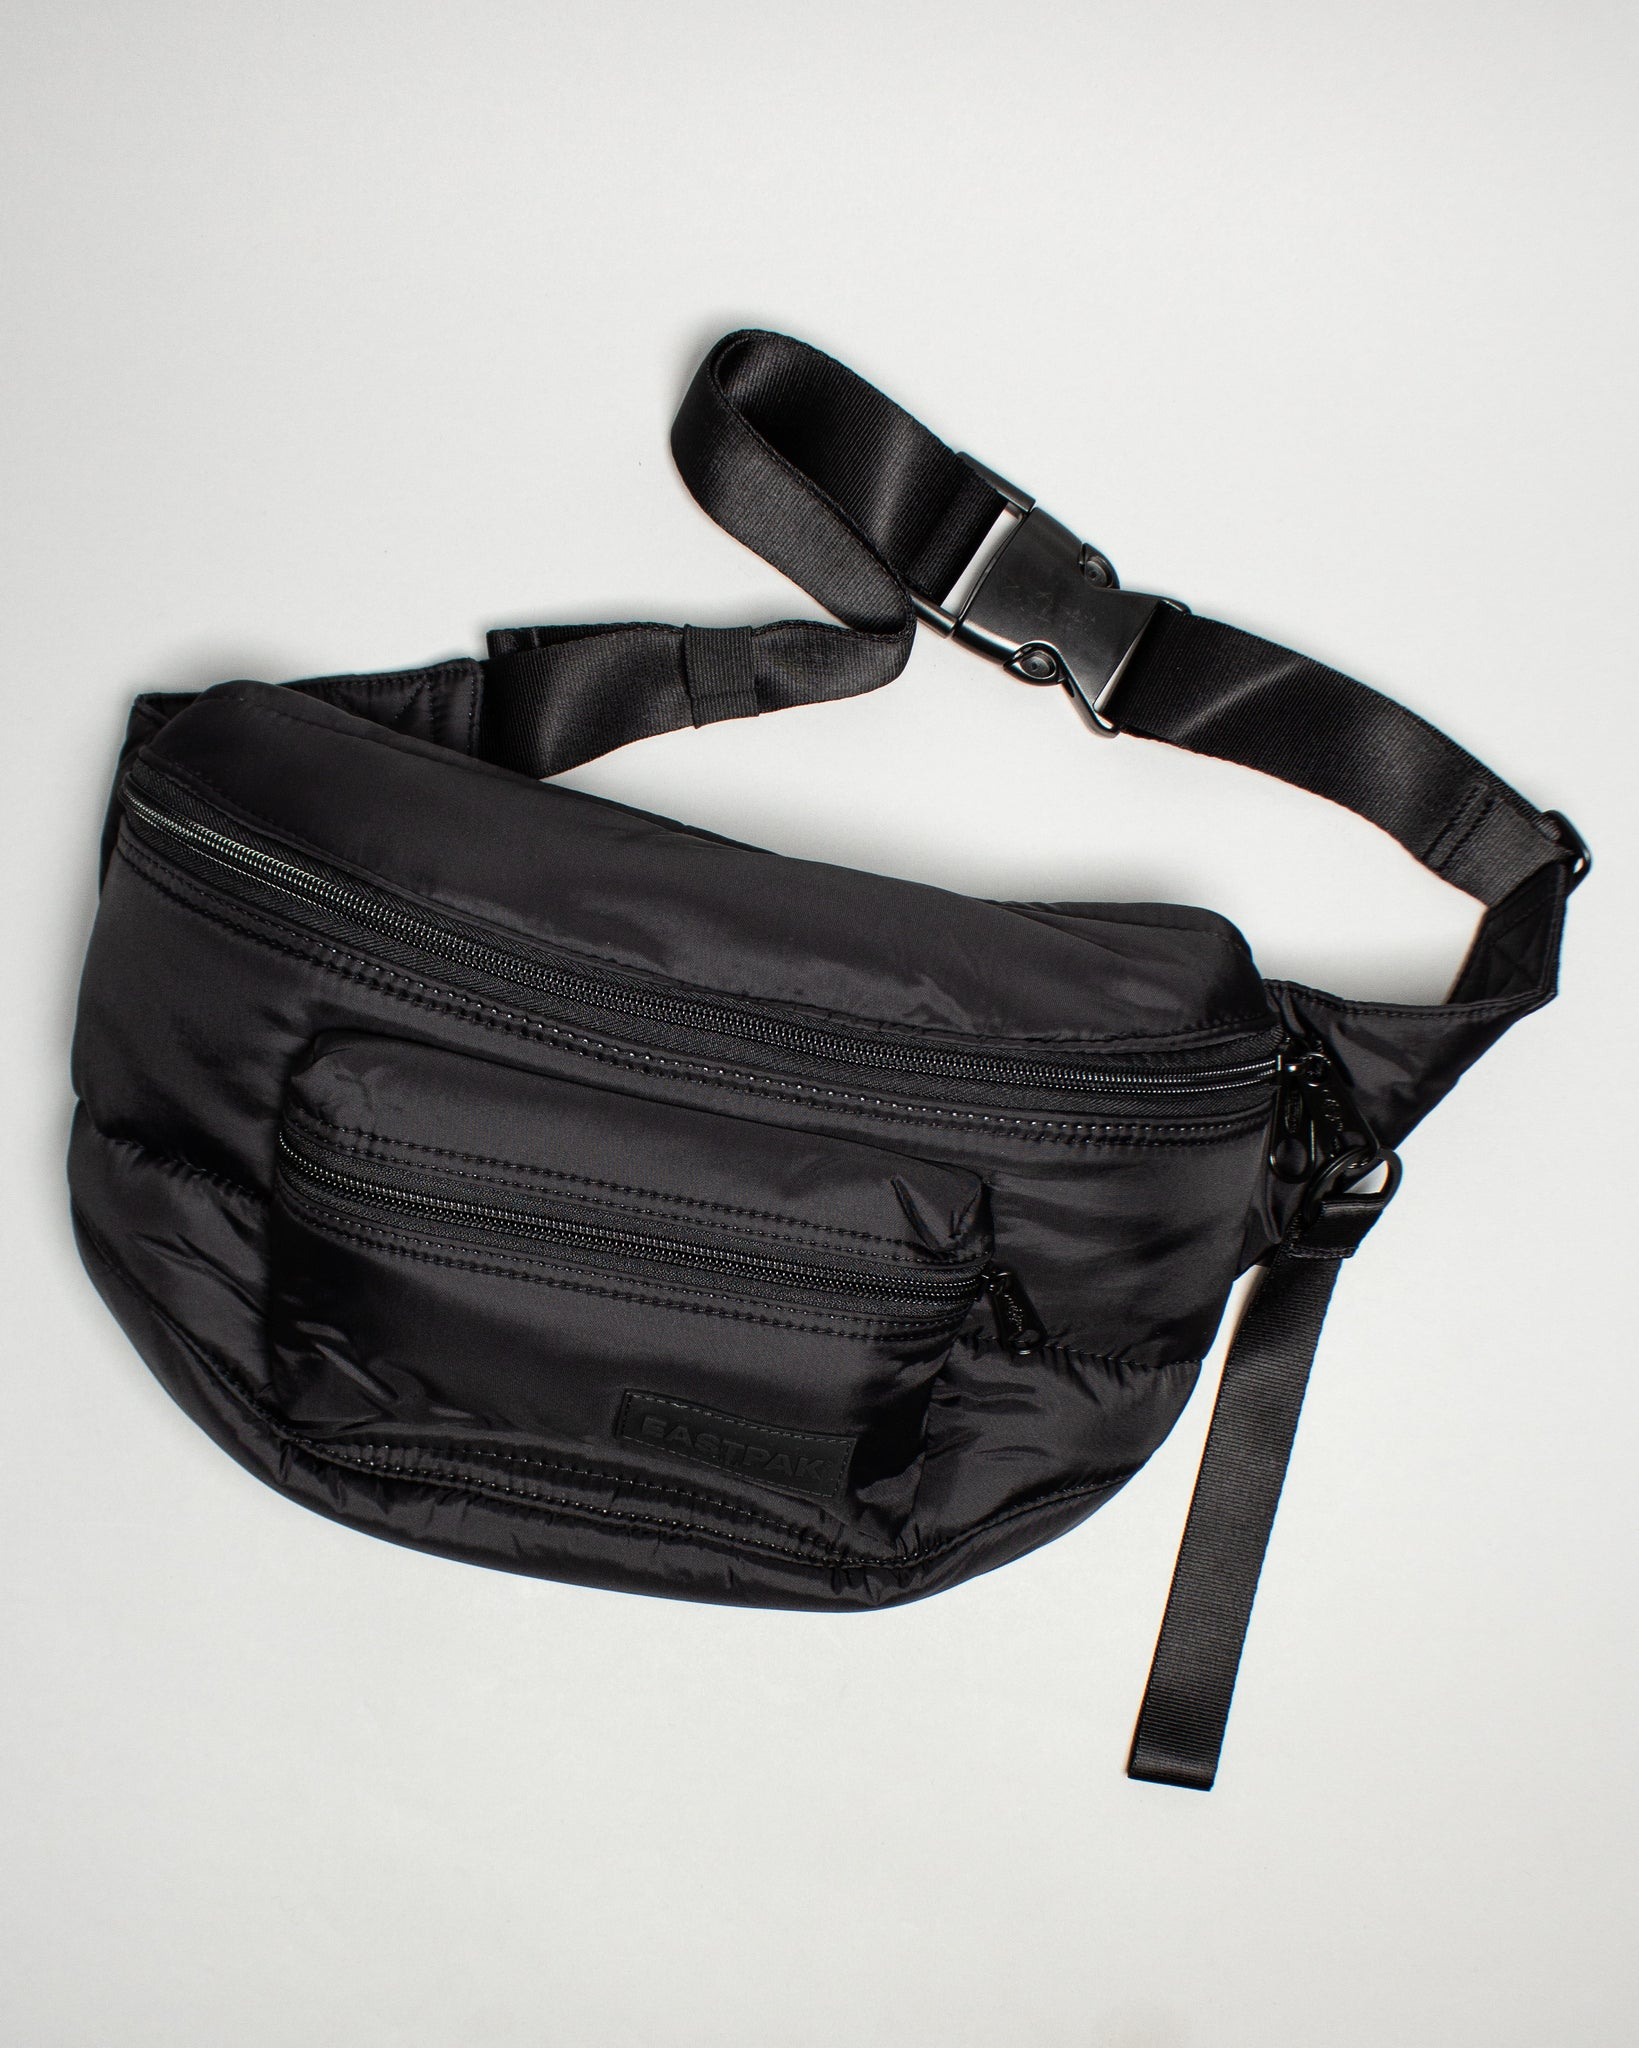 Doggy Bag XL Puffed Black